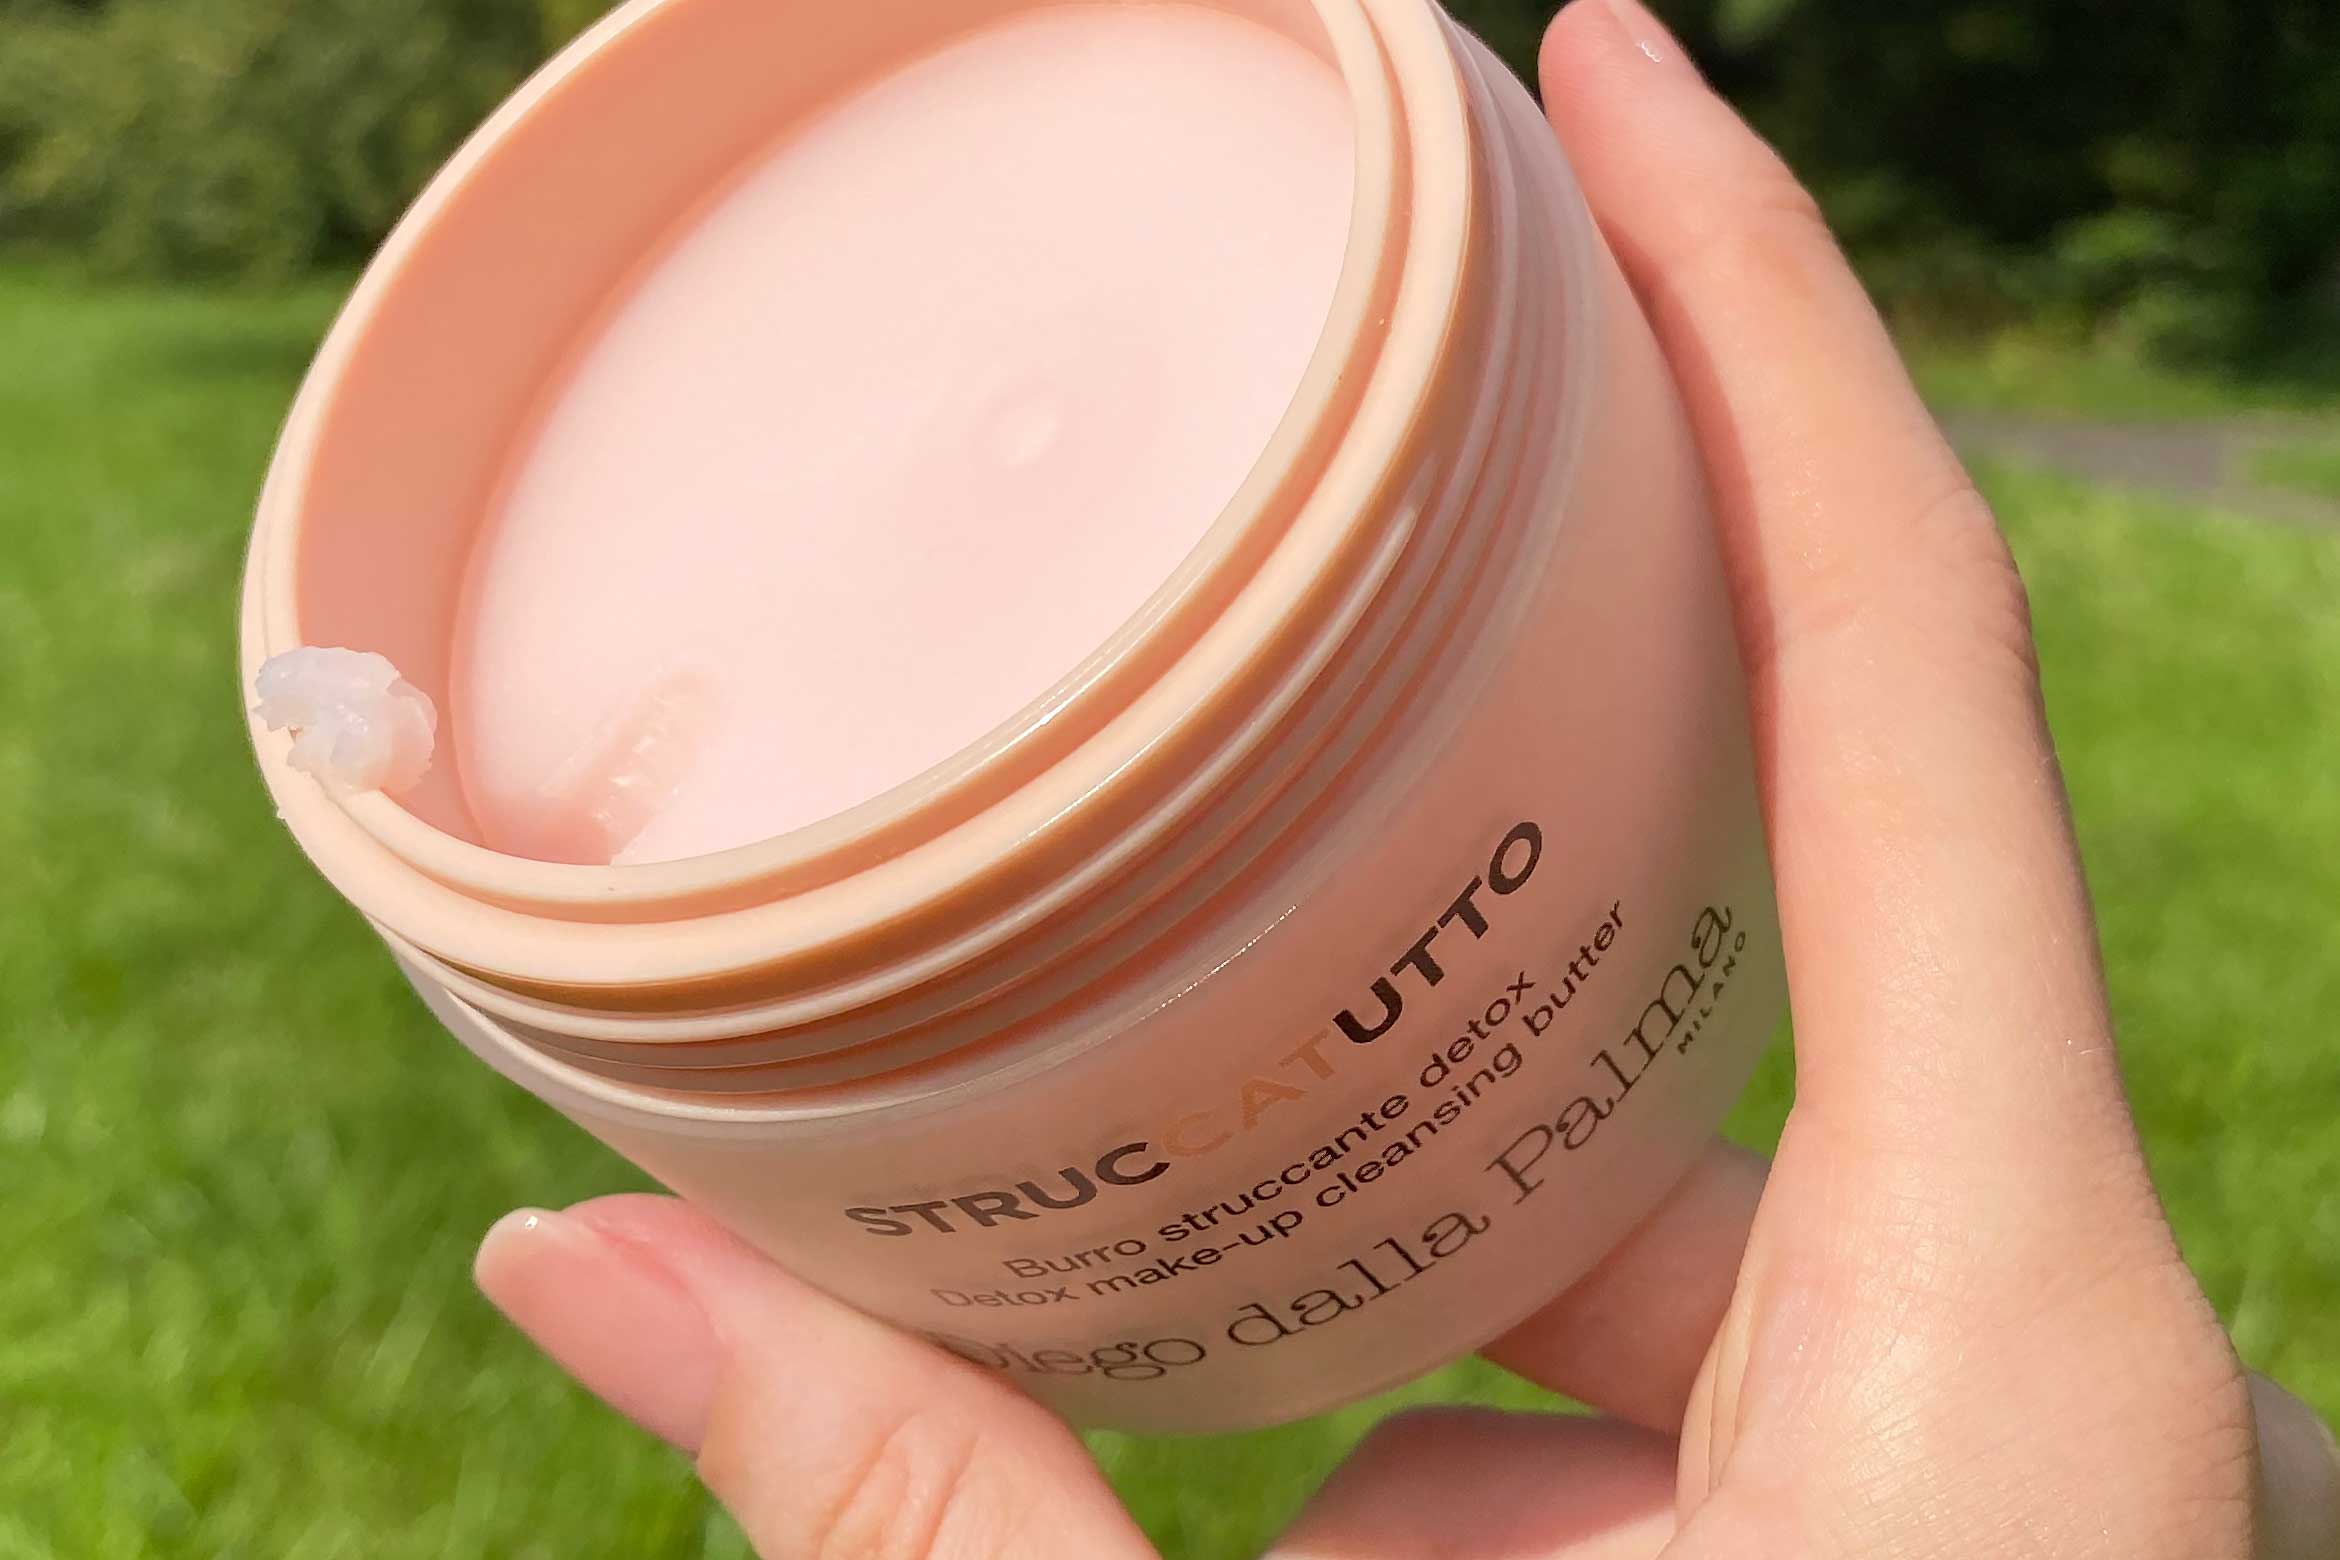 diego dalla palma struccatutto detox make-up cleansing butter textuur review